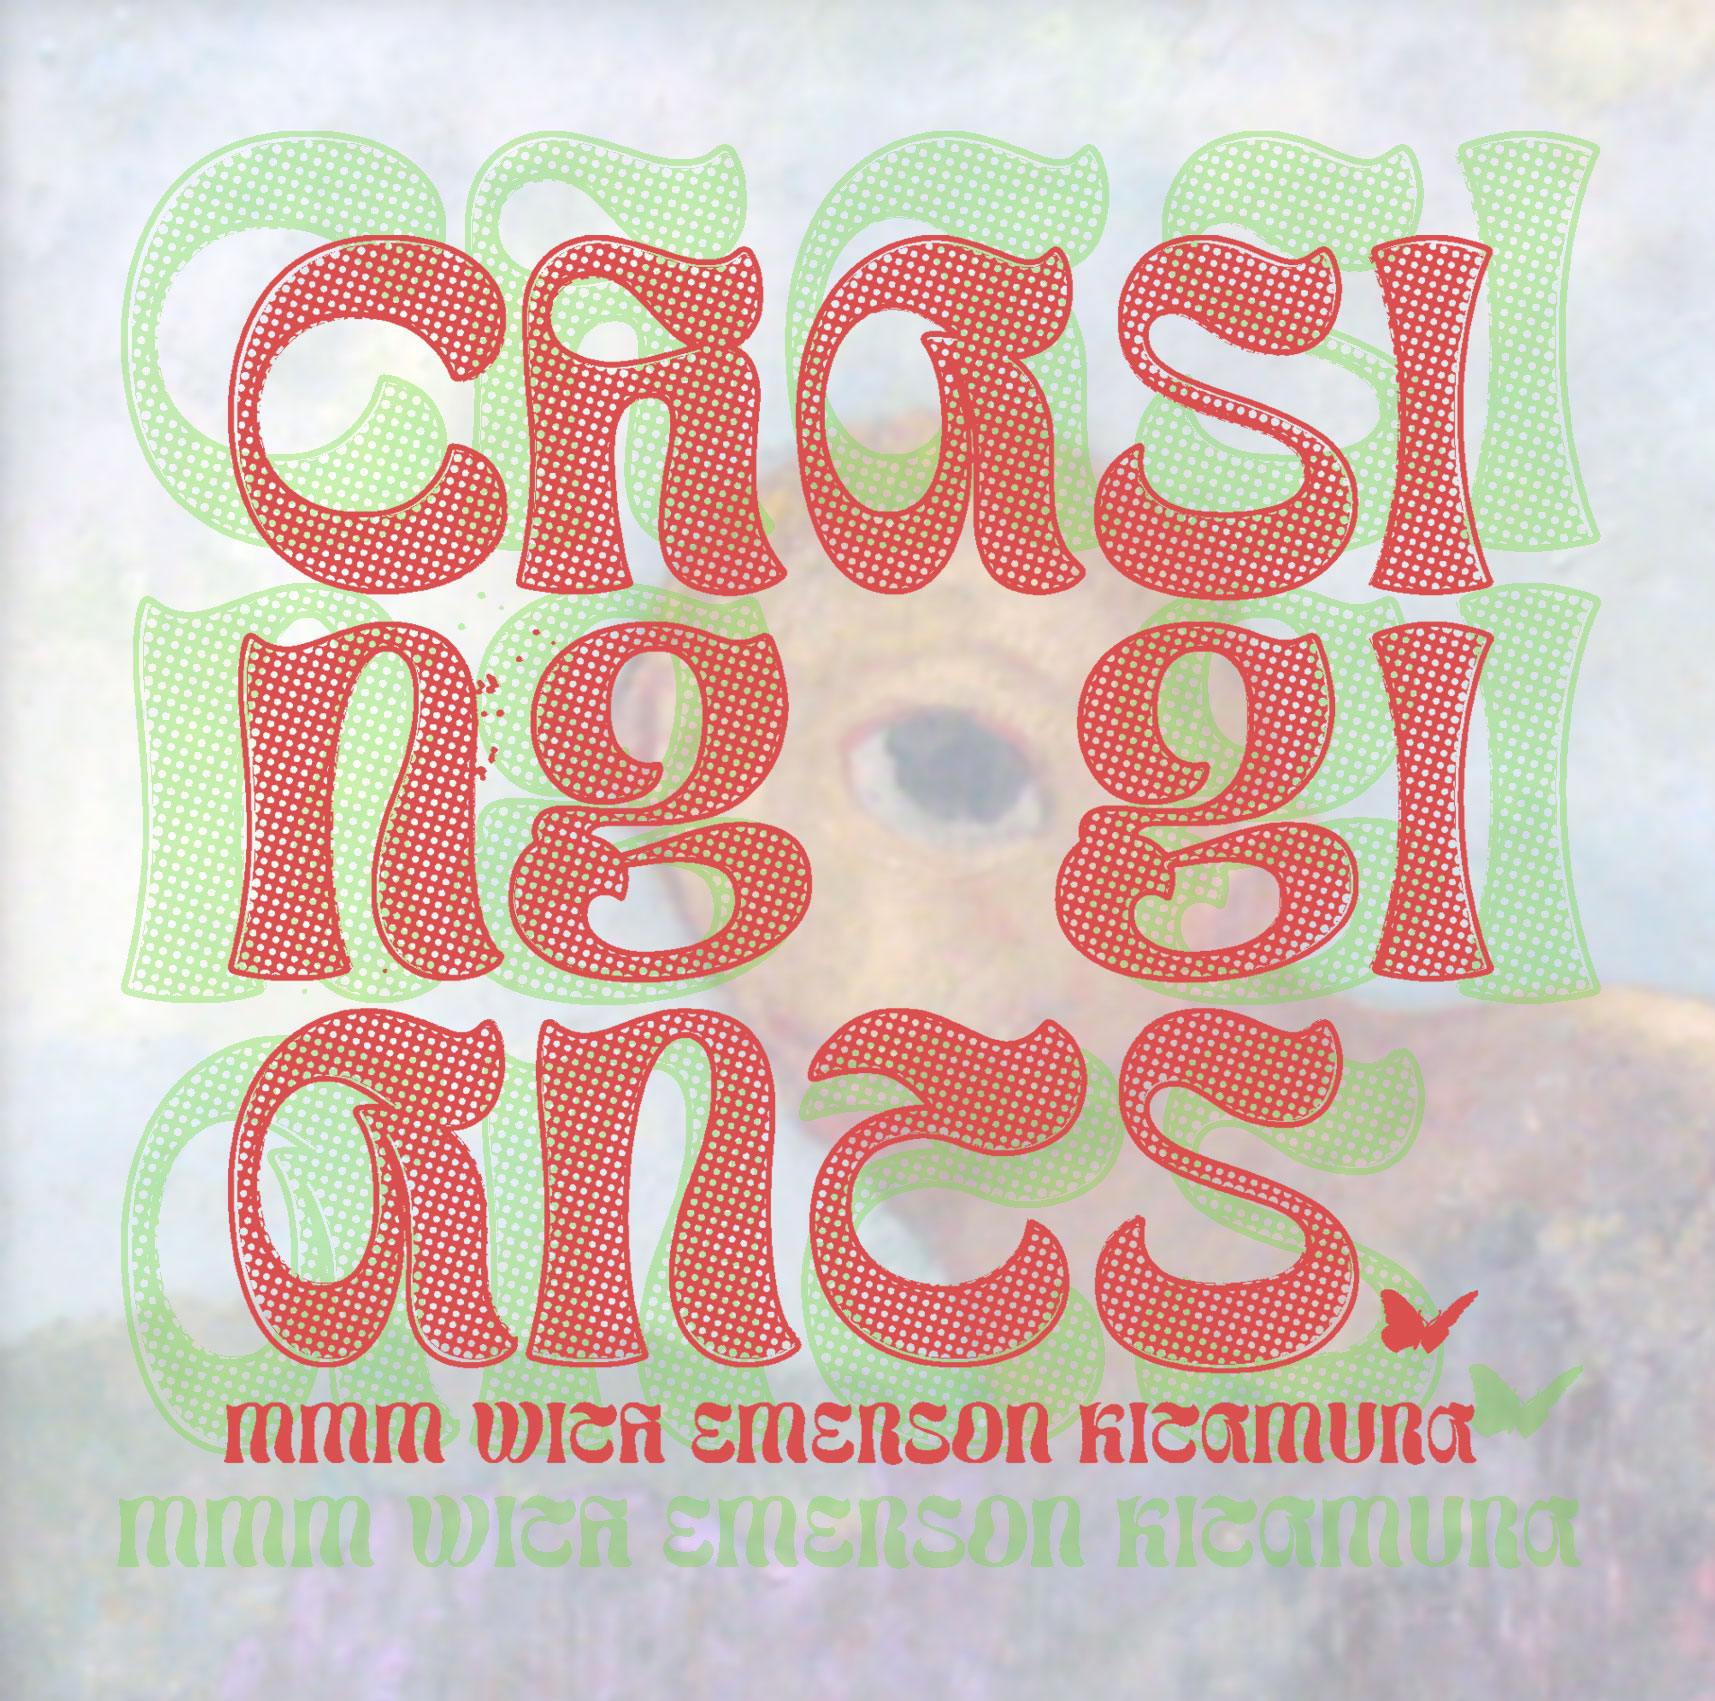 CHASING GIANTSジャケ